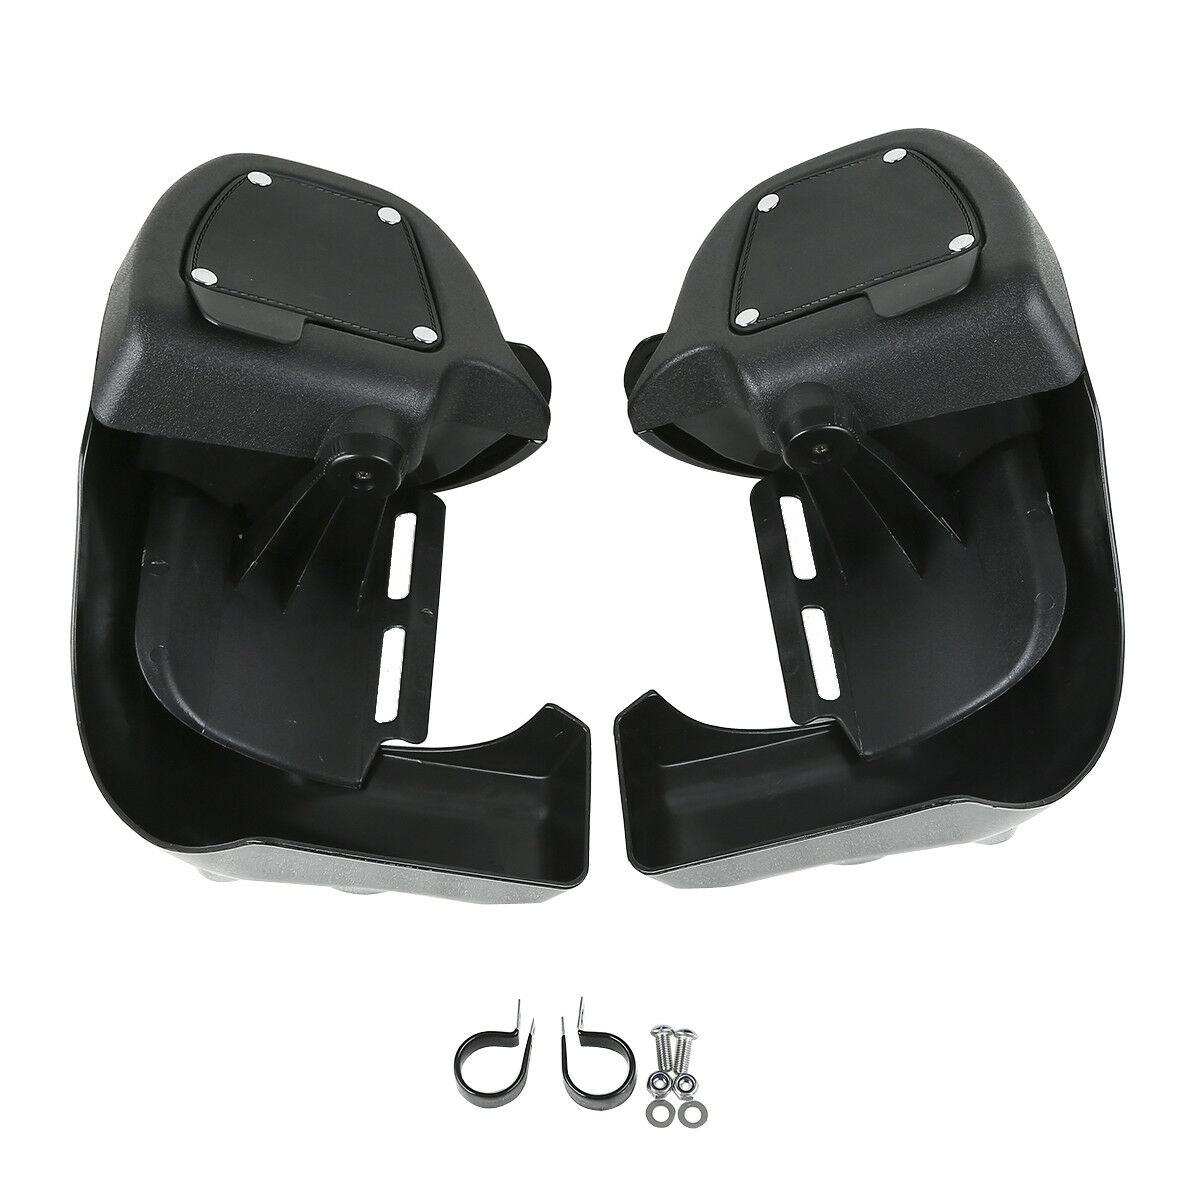 TCMT Unpainted ABS Lower Vented Leg Fairings Fit For Harley Touring Road Glide 83-13